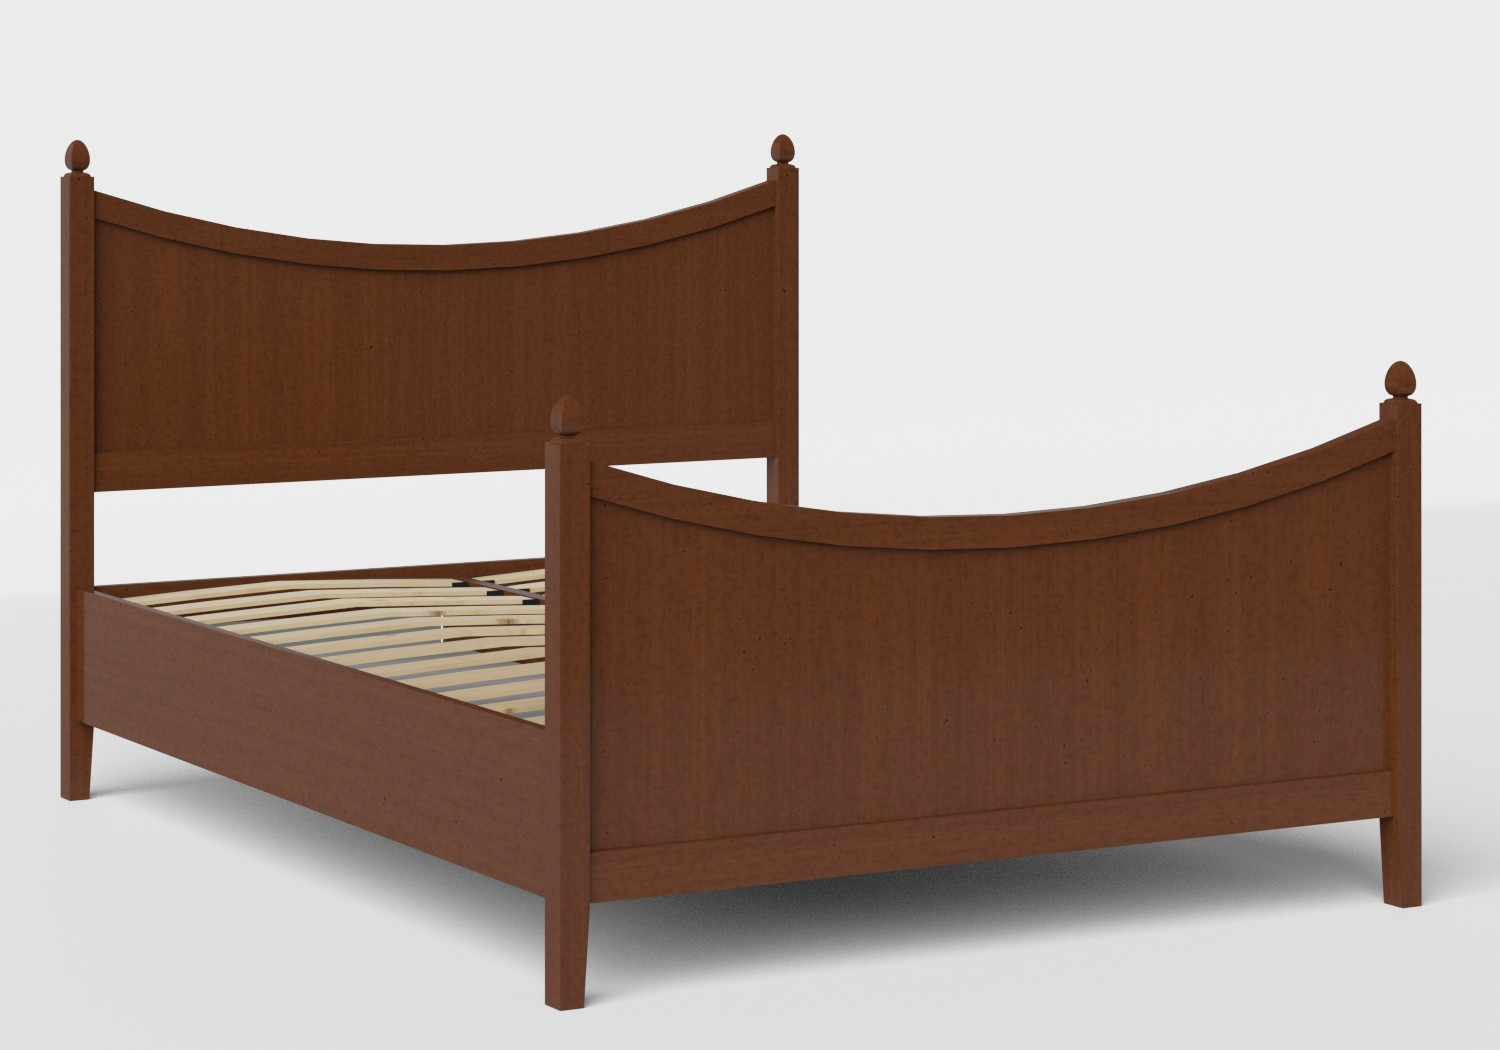 Blake Wood Bed in Dark Cherry shown with slatted frame